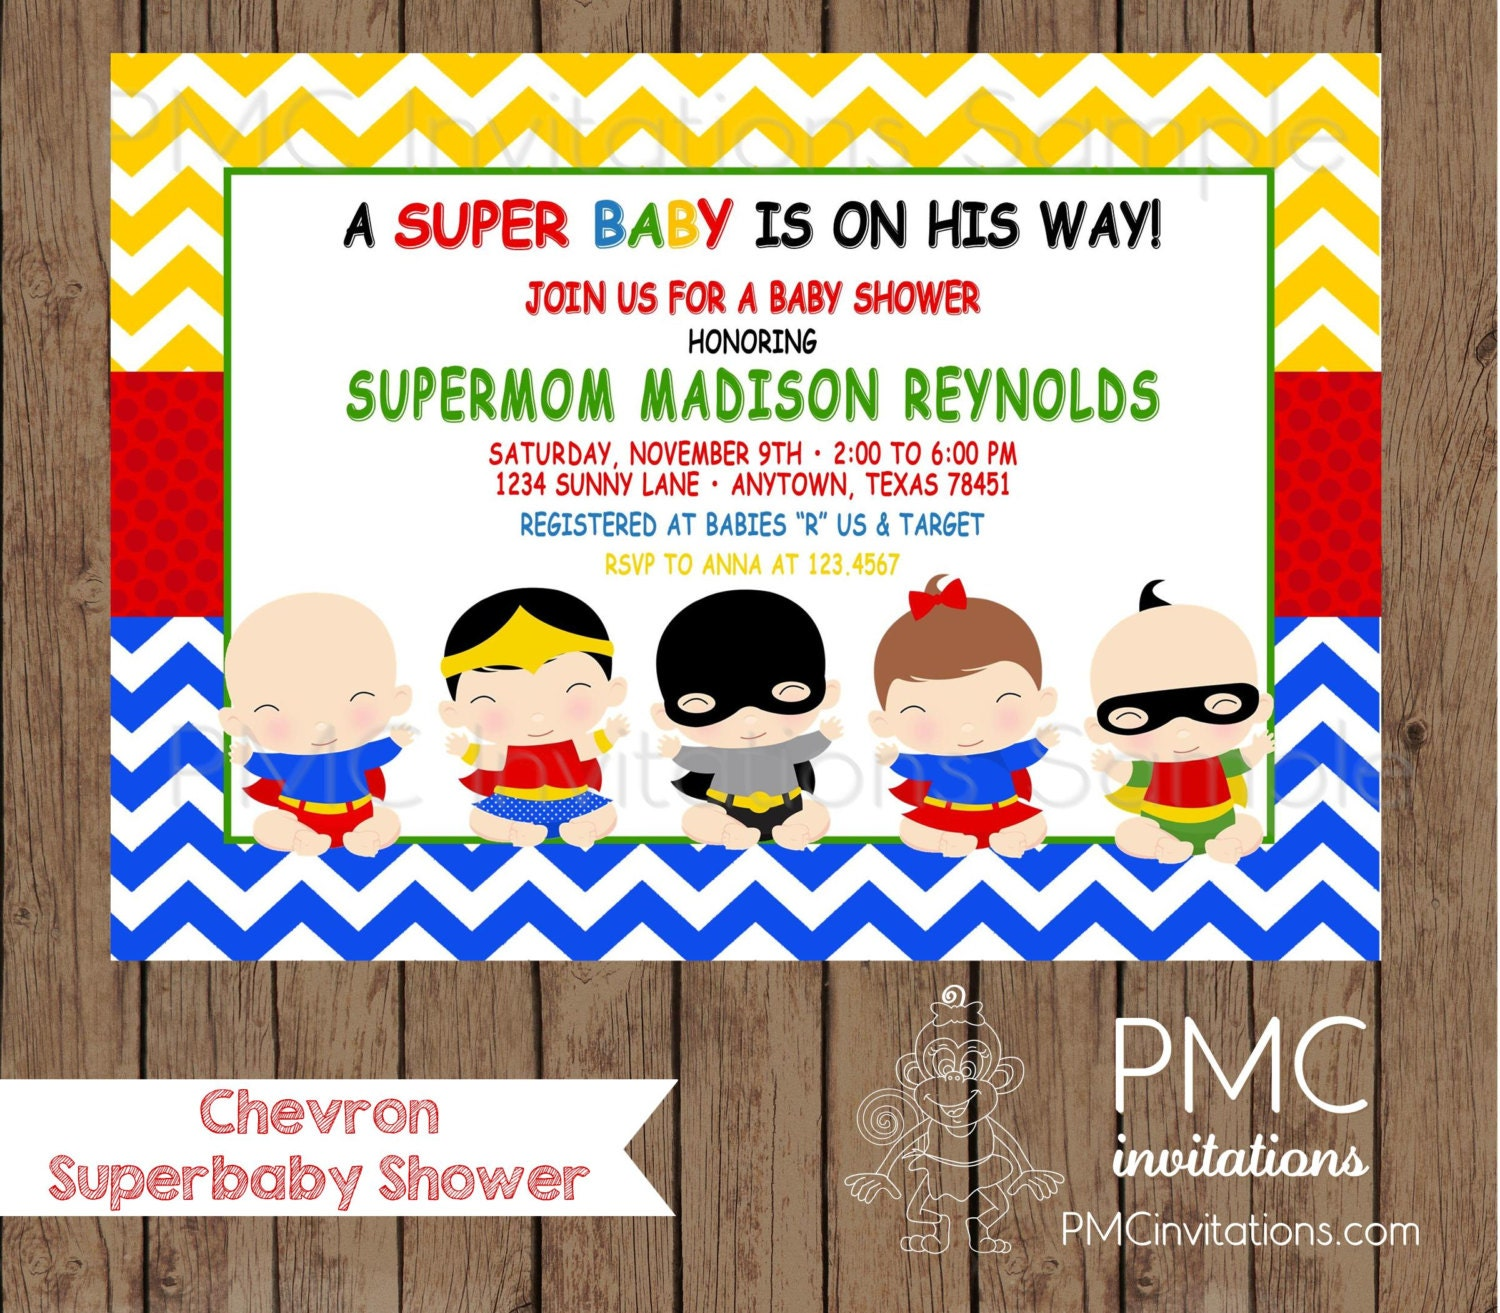 Custom Printed Chevron Superhero Baby Shower Invitations